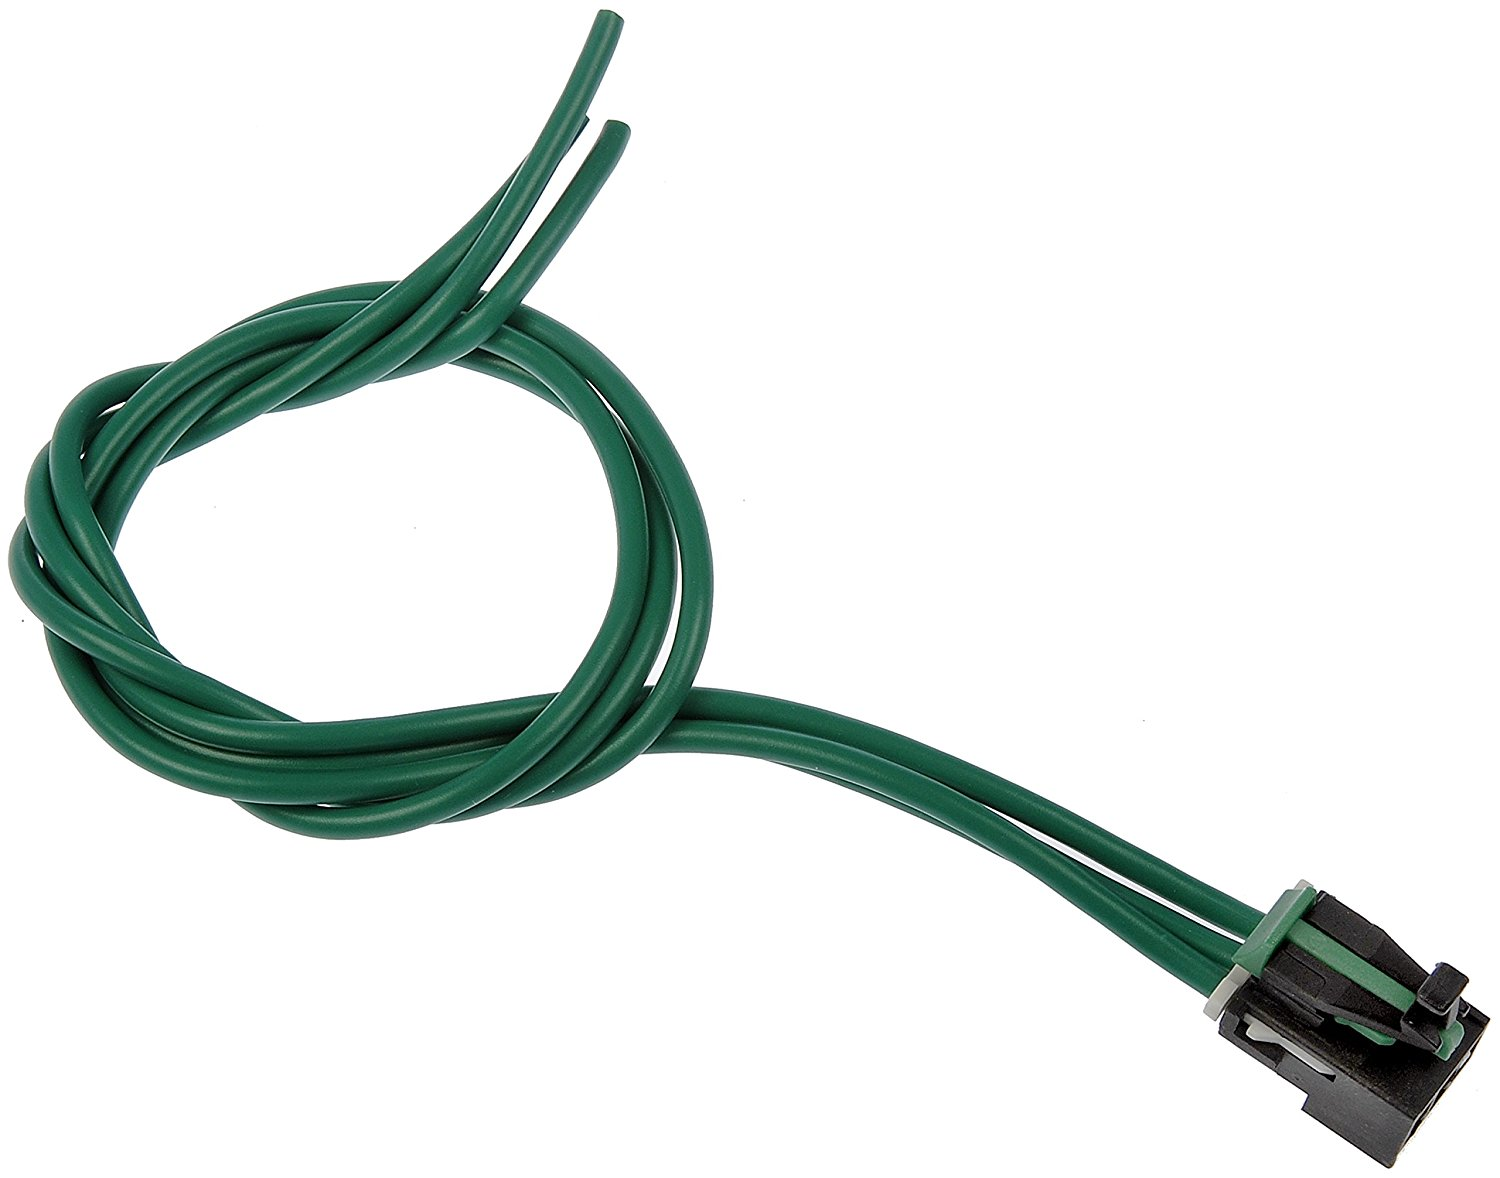 hight resolution of 973 304 hvac system electrical connector simply plugs into the blower motor resistor for ease of installation by dorman walmart com